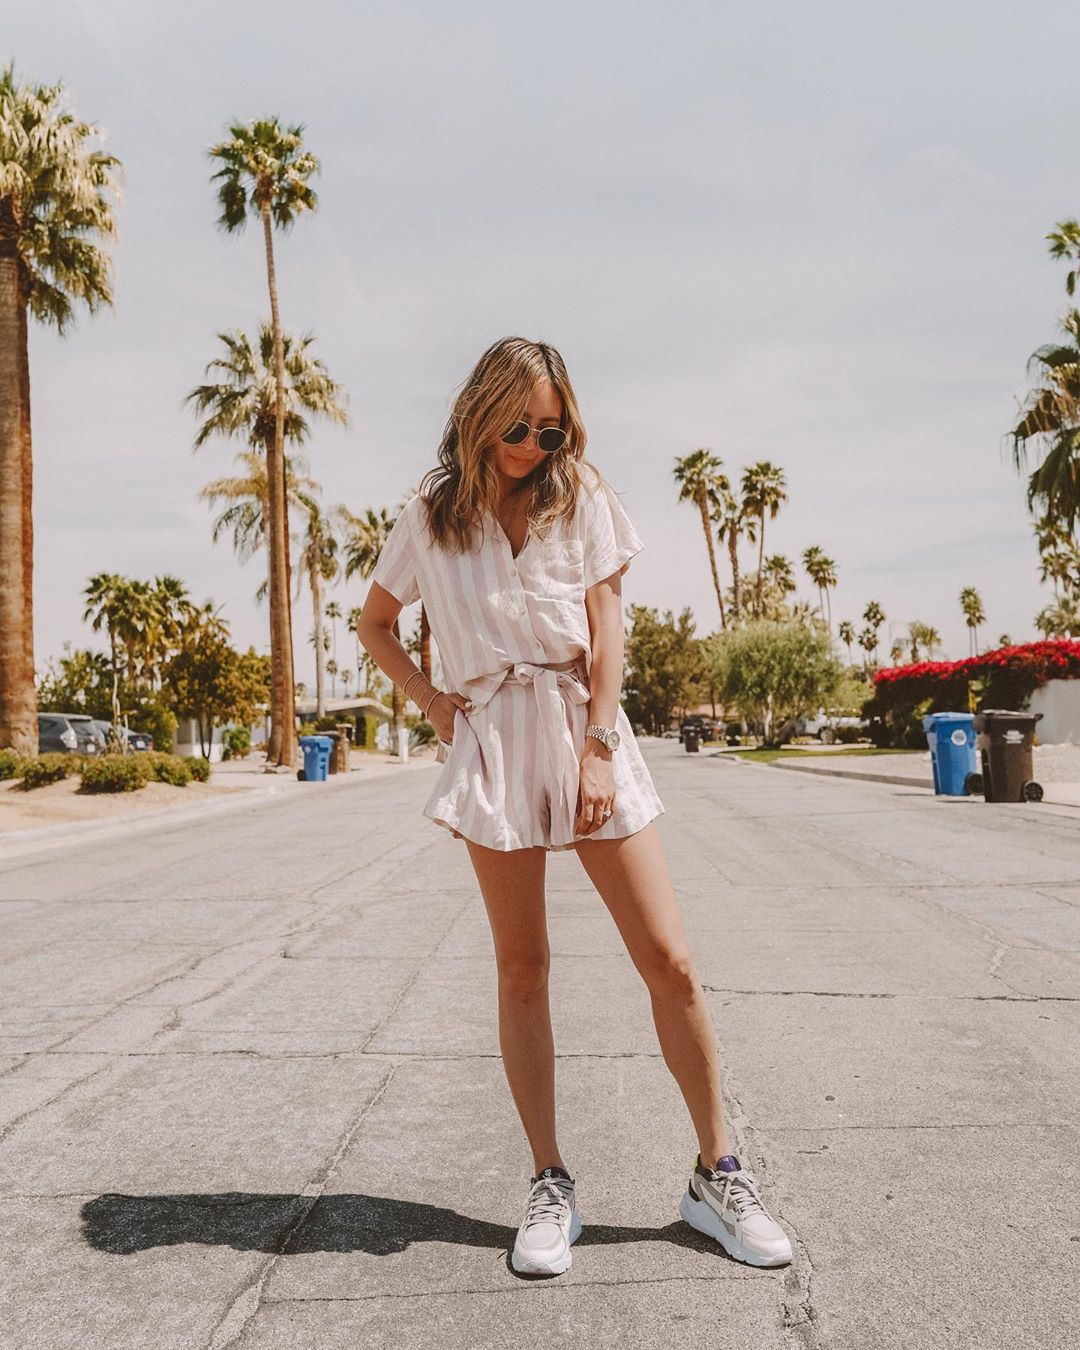 shorts High waisted shorts stripes striped shirt sneakers summer outfits